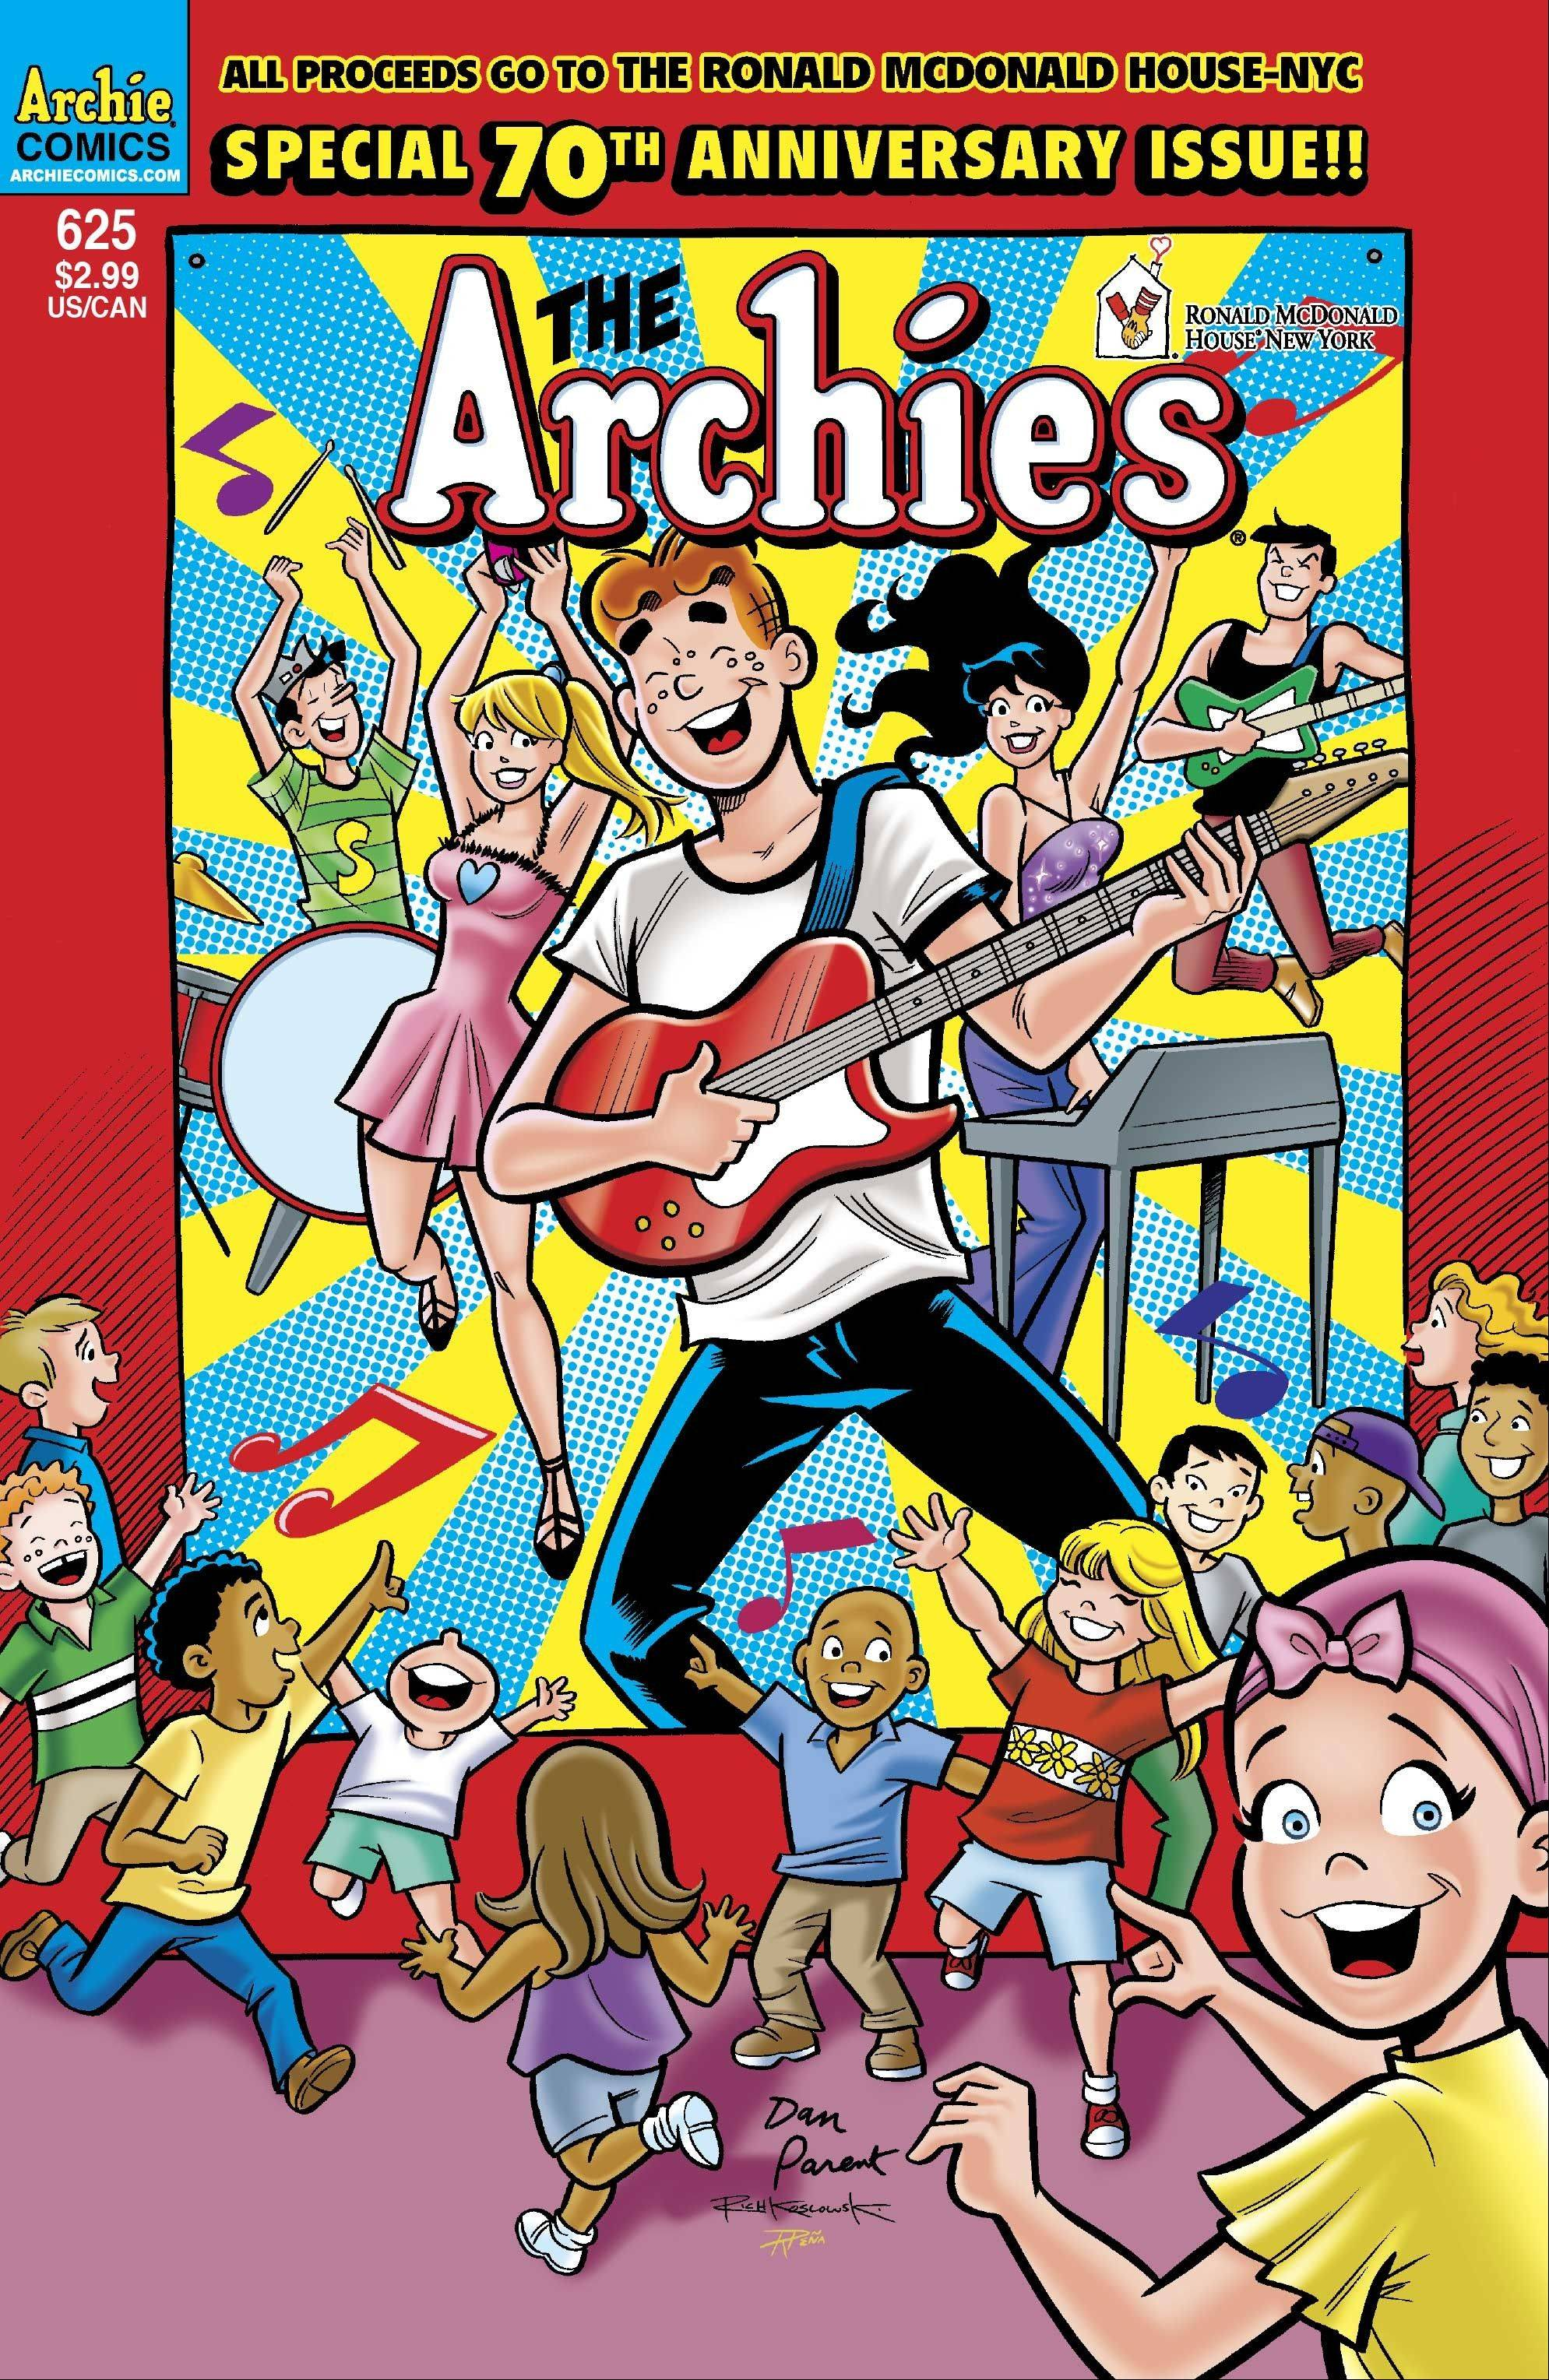 Archie Comics is celebrating its 70th year publishing comic books by focusing the next issue, which is released Wednesday, on helping treat kids with cancer and donating the profit from it to the Ronald McDonald House New York.